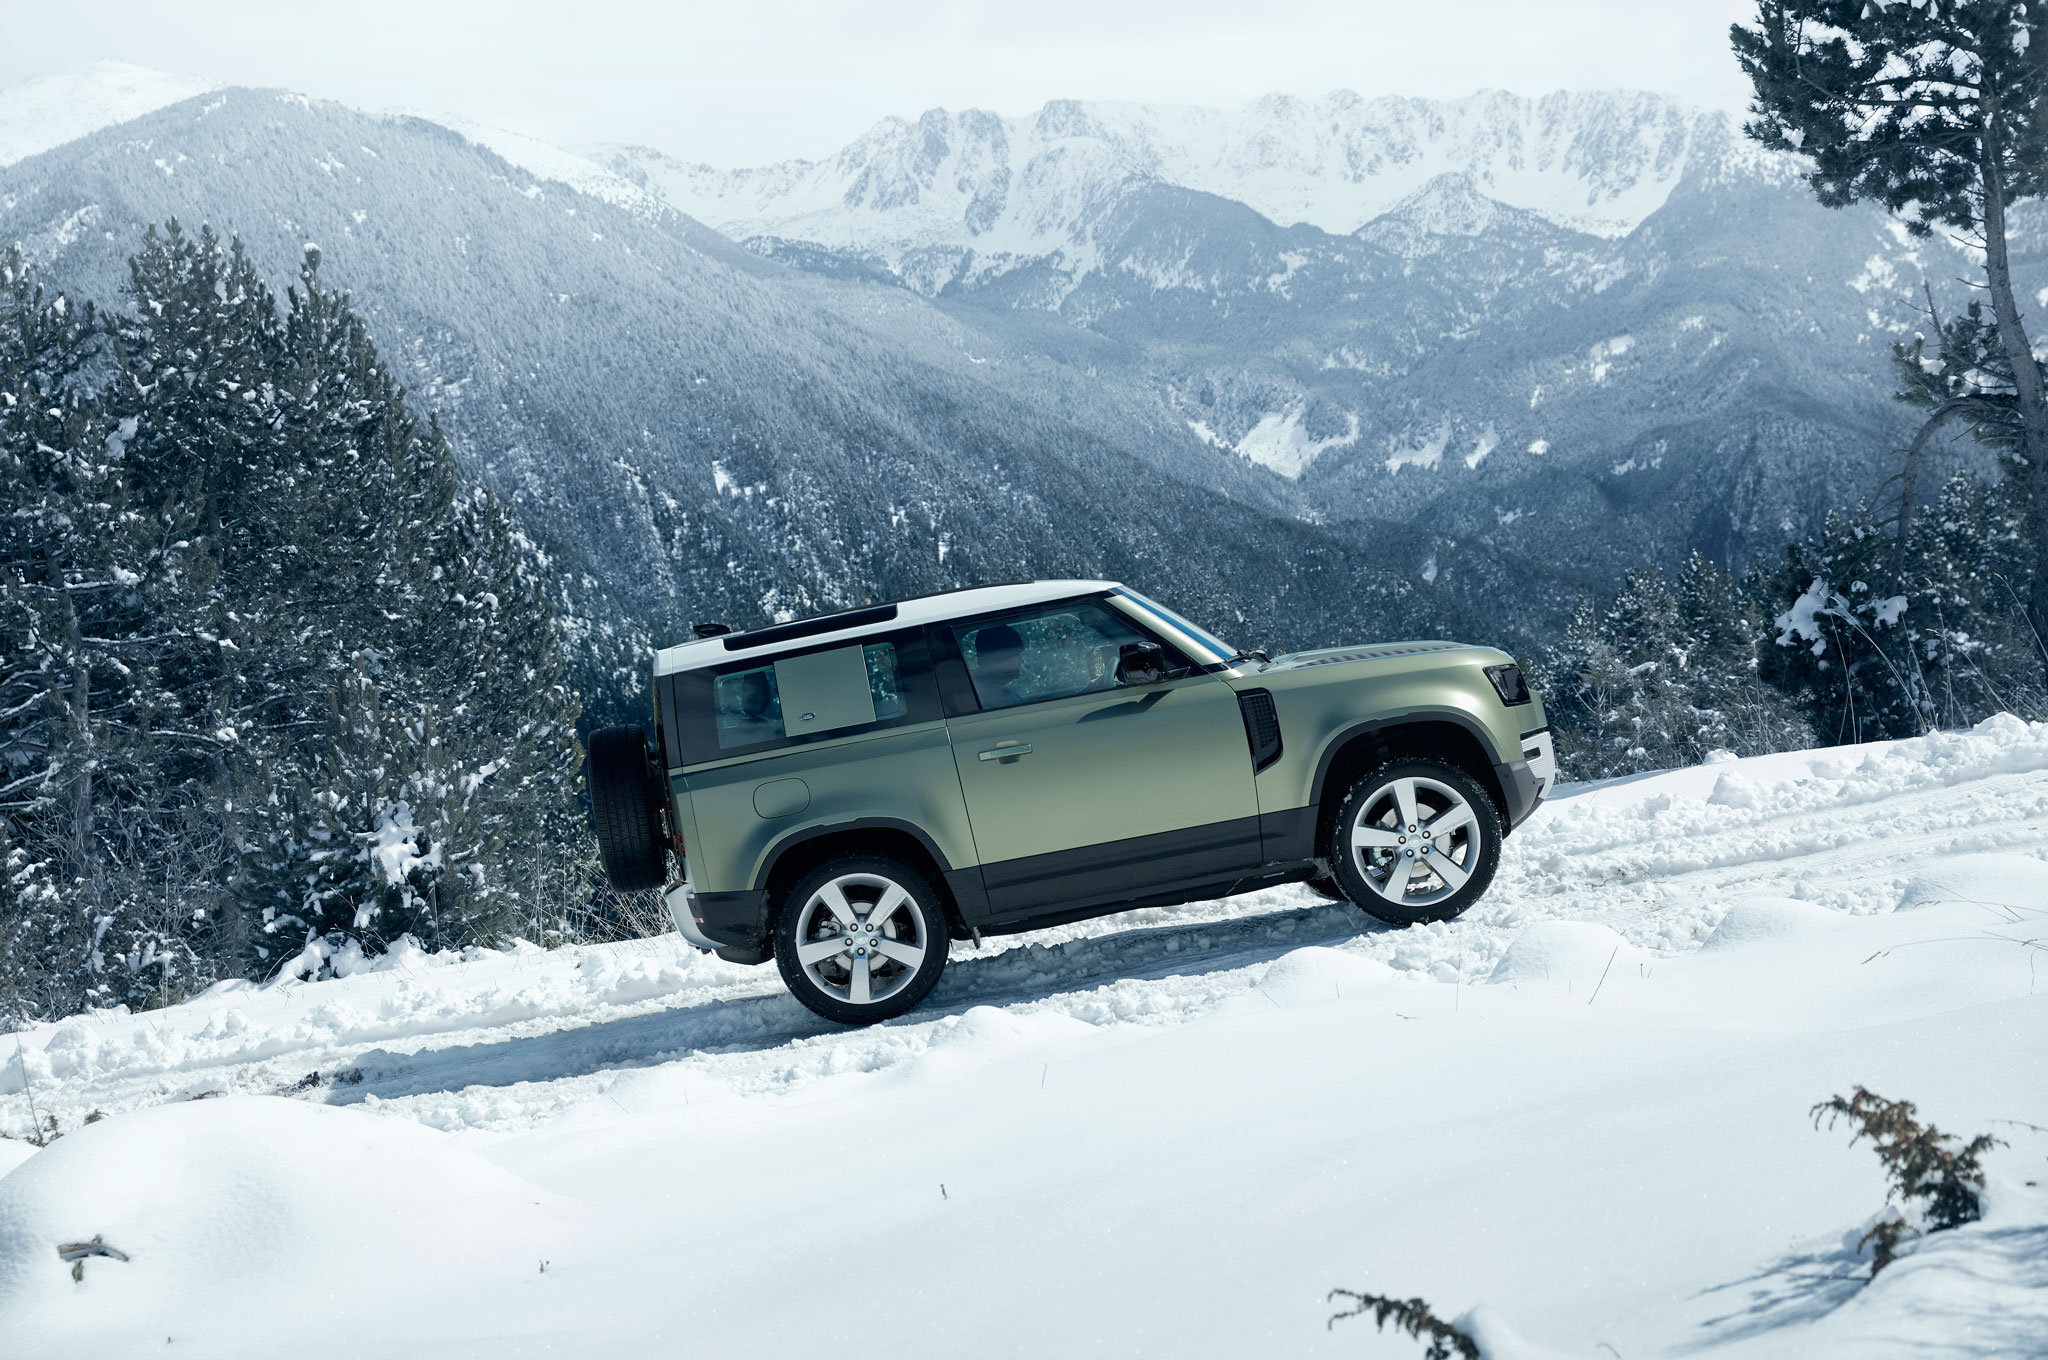 2020 land rover defender 90 off road snow 02